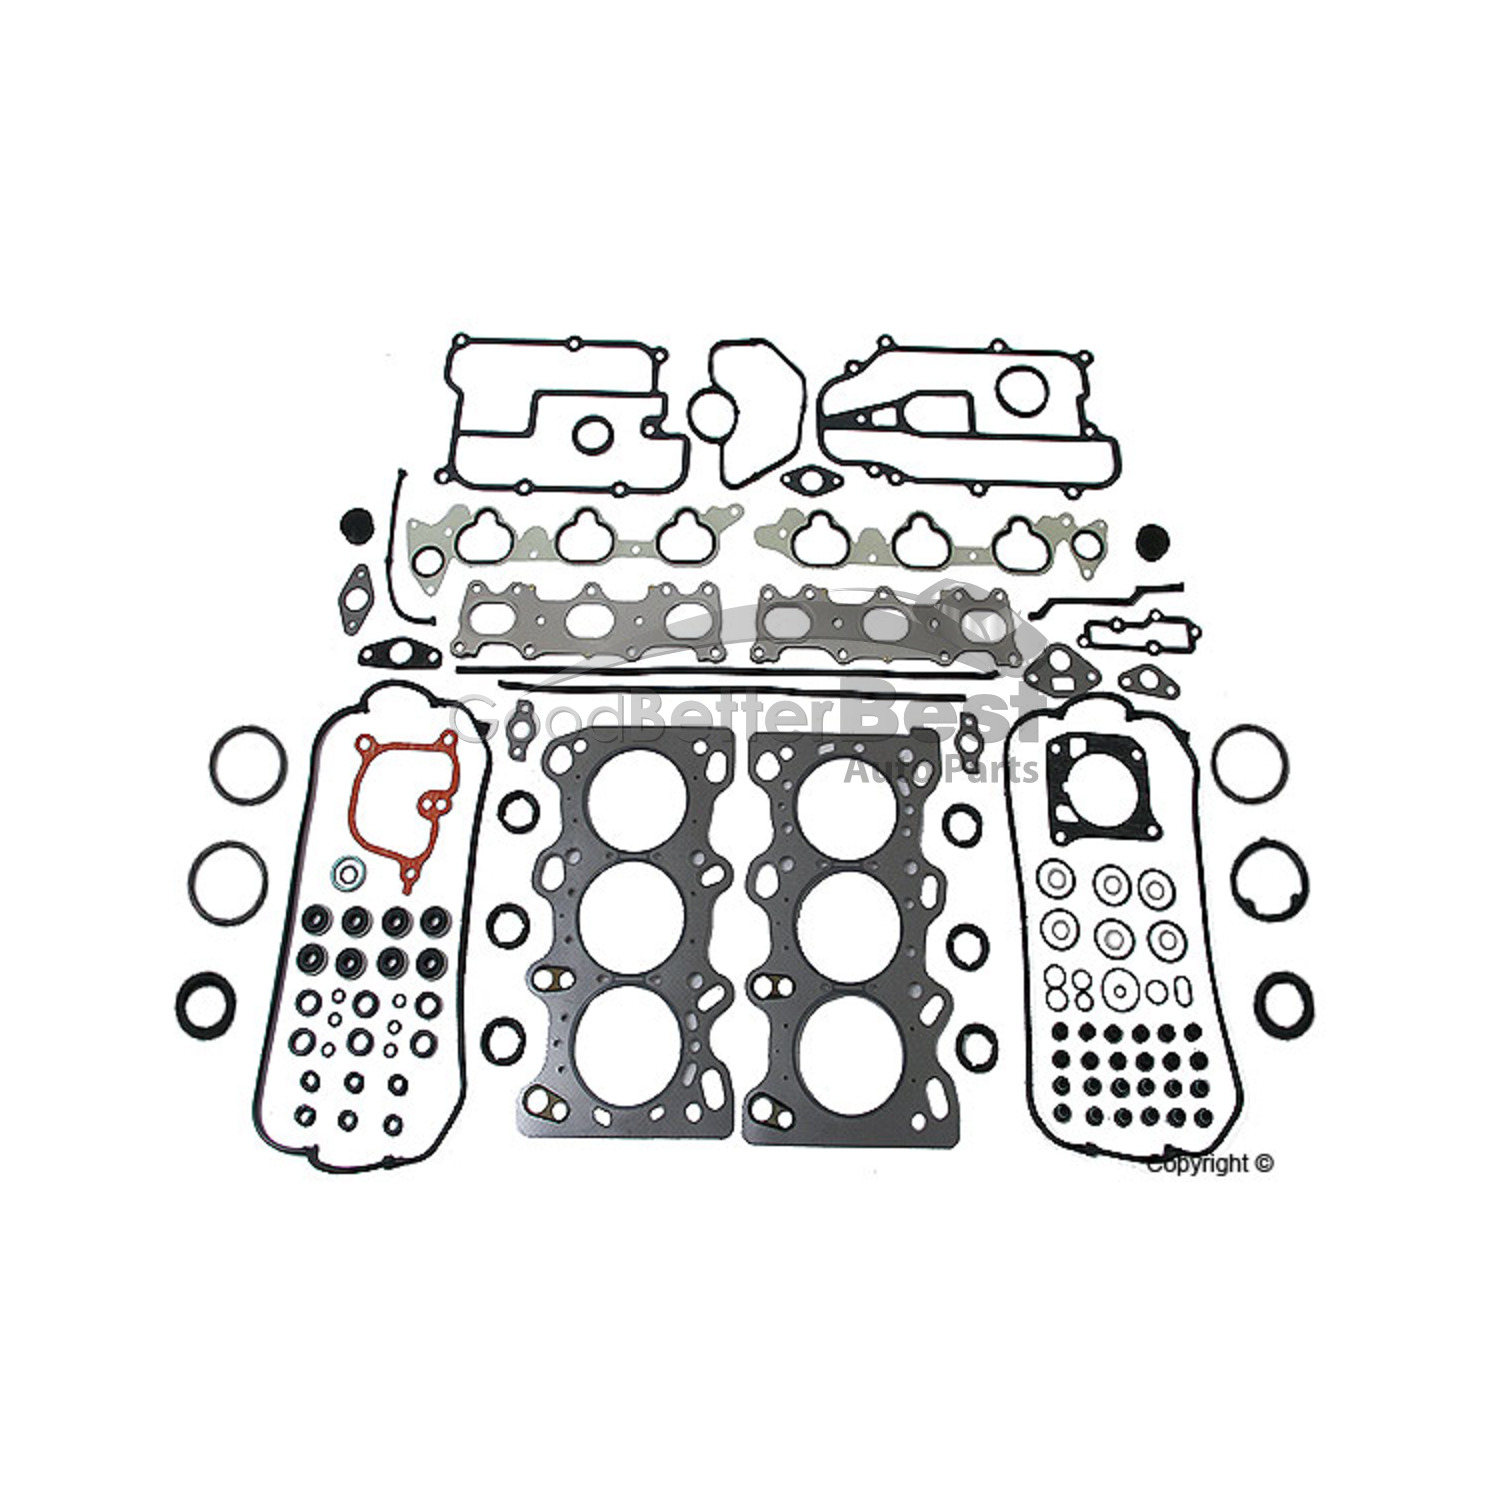 New Stone Engine Cylinder Head Gasket Set Jhs N